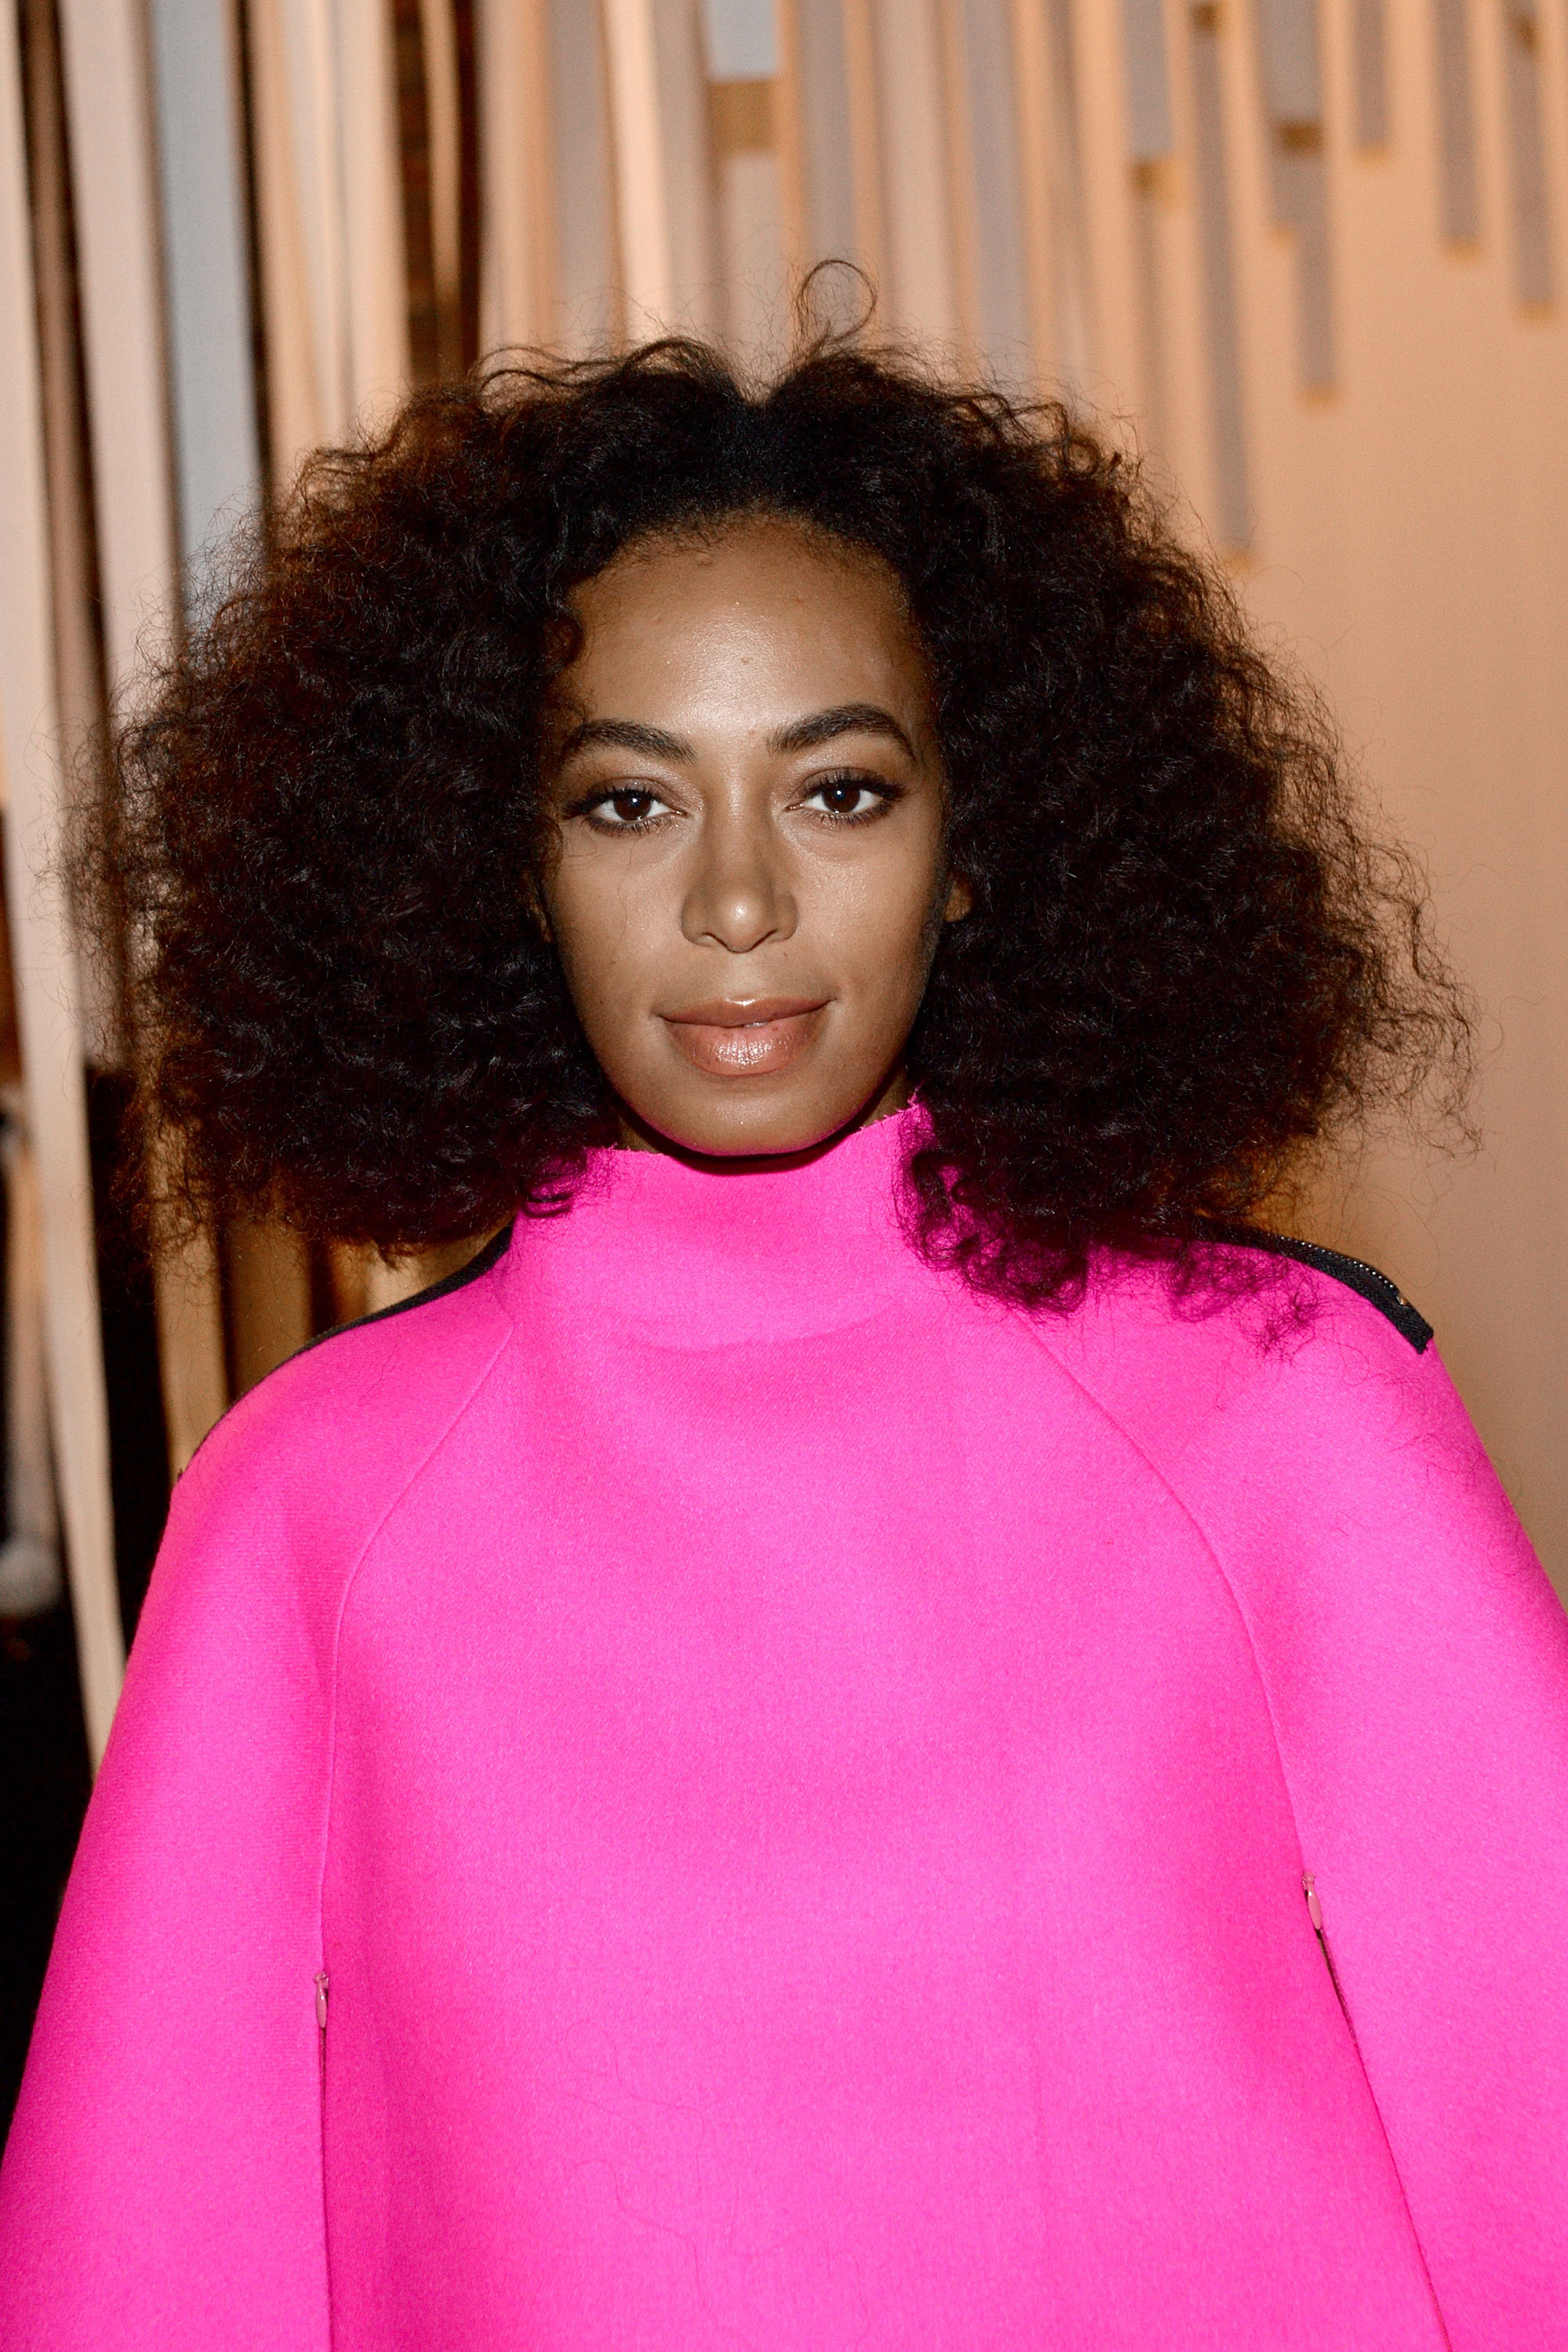 Solange Knowles says she was 'literally fighting for my life' while making album